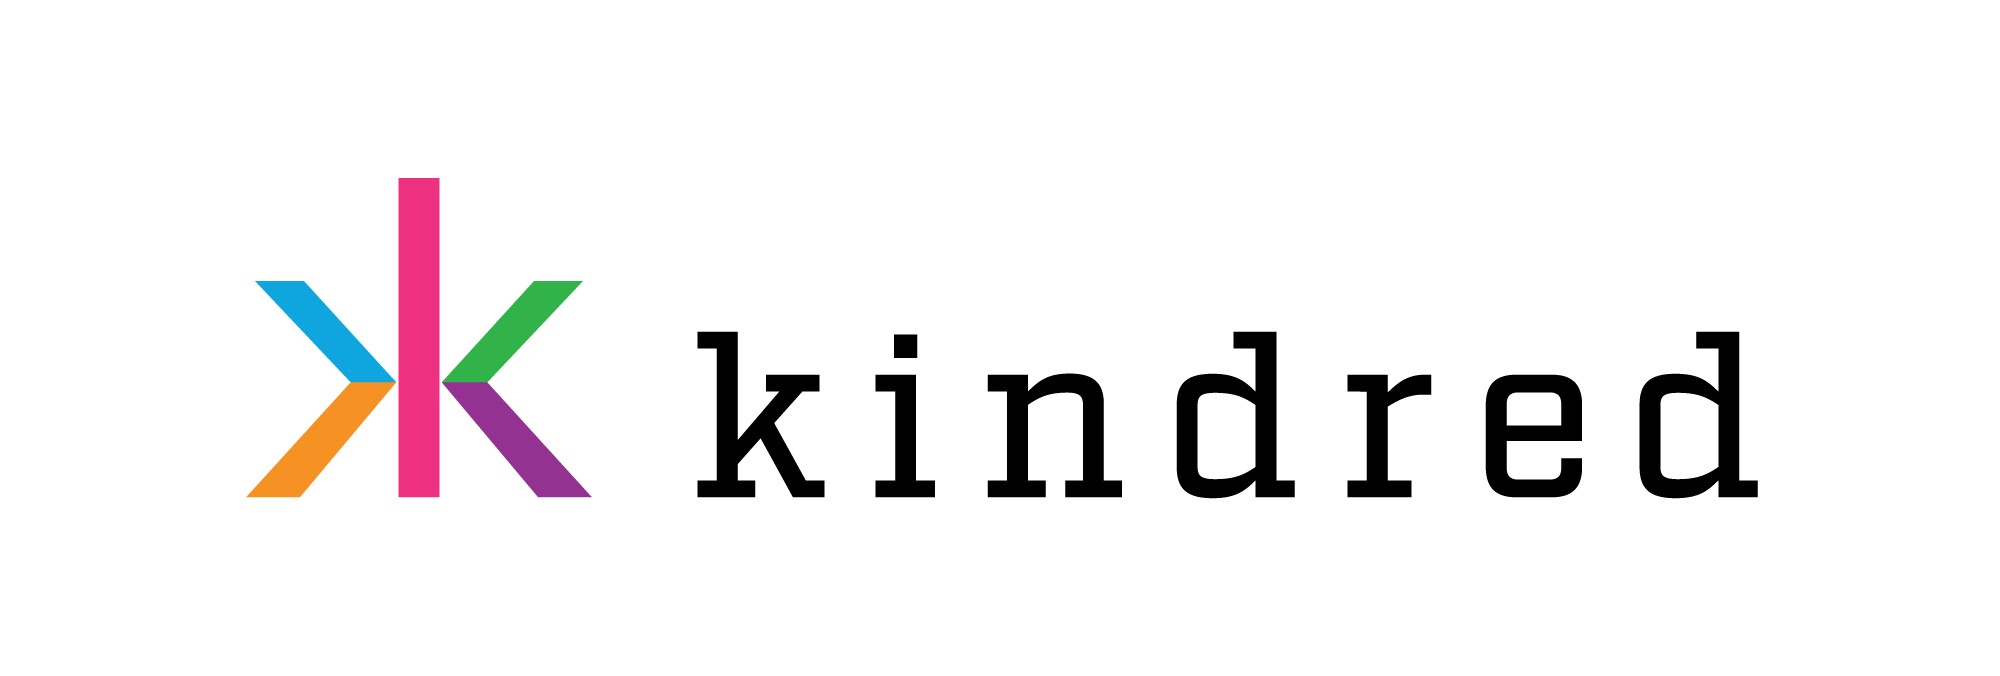 kindred logo.jpg